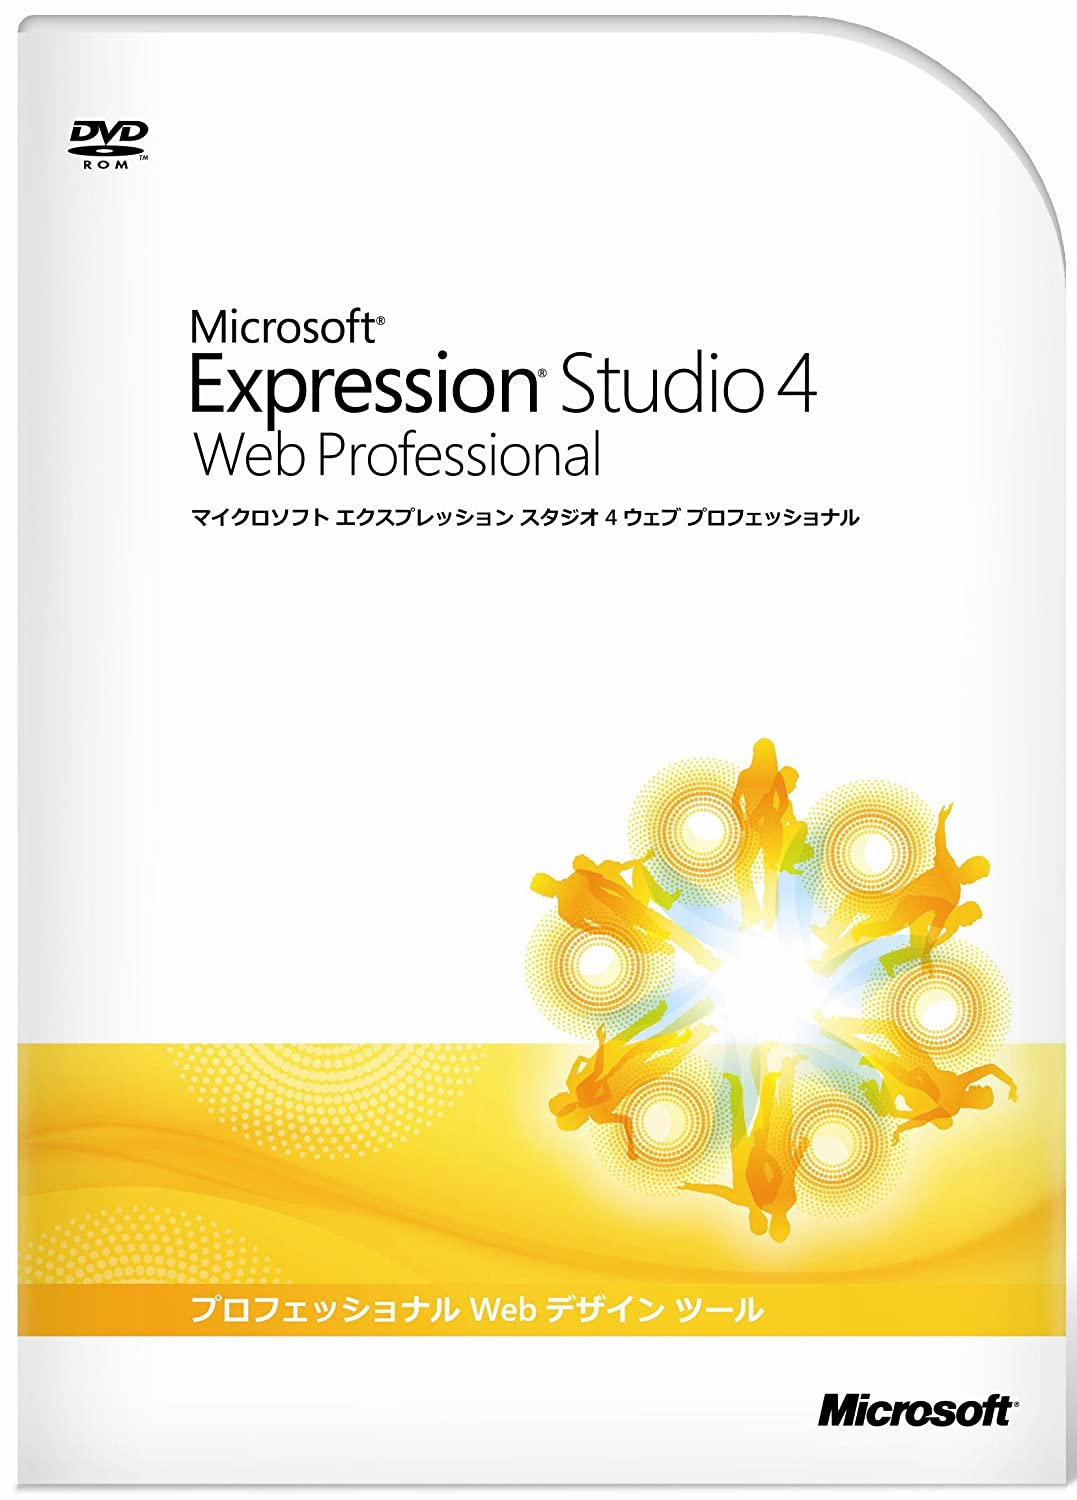 Expression Studio Web Professional 4.0 日本語版 B003YDORQI Parent